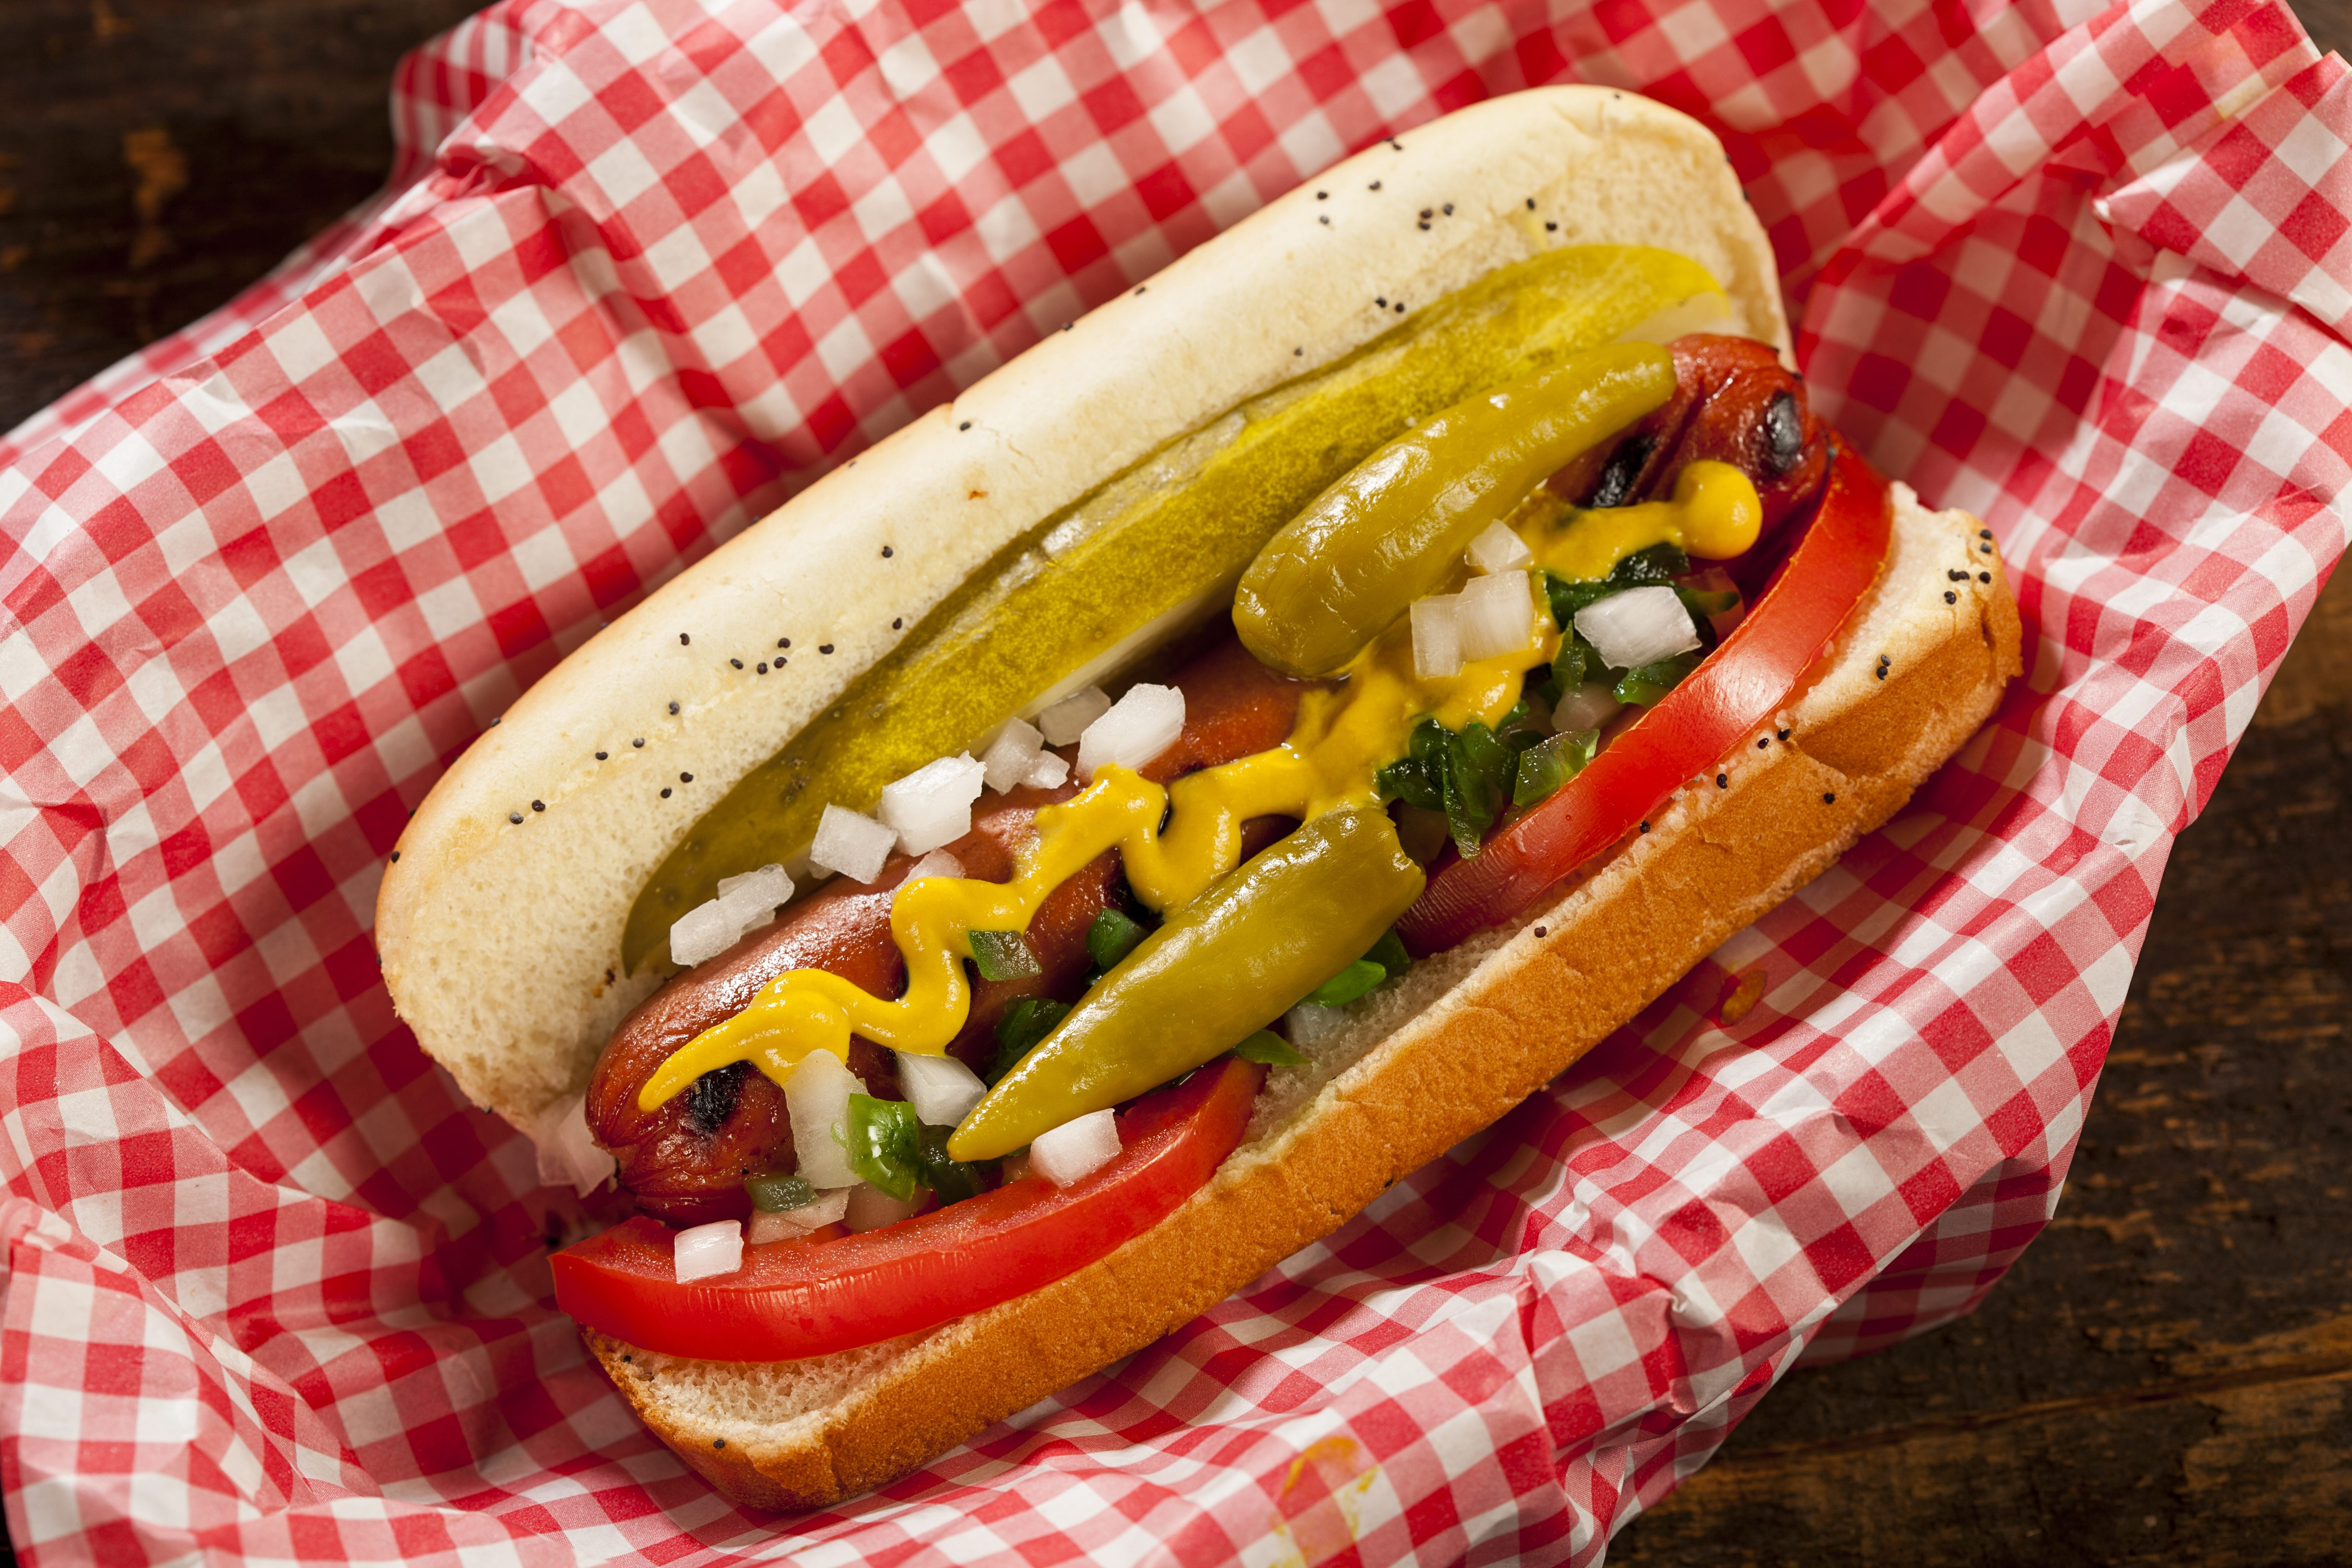 Chicago Style Hot Dog with Mustard, Pickle, Tomato, Relish and Onion; Shutterstock ID 150836300